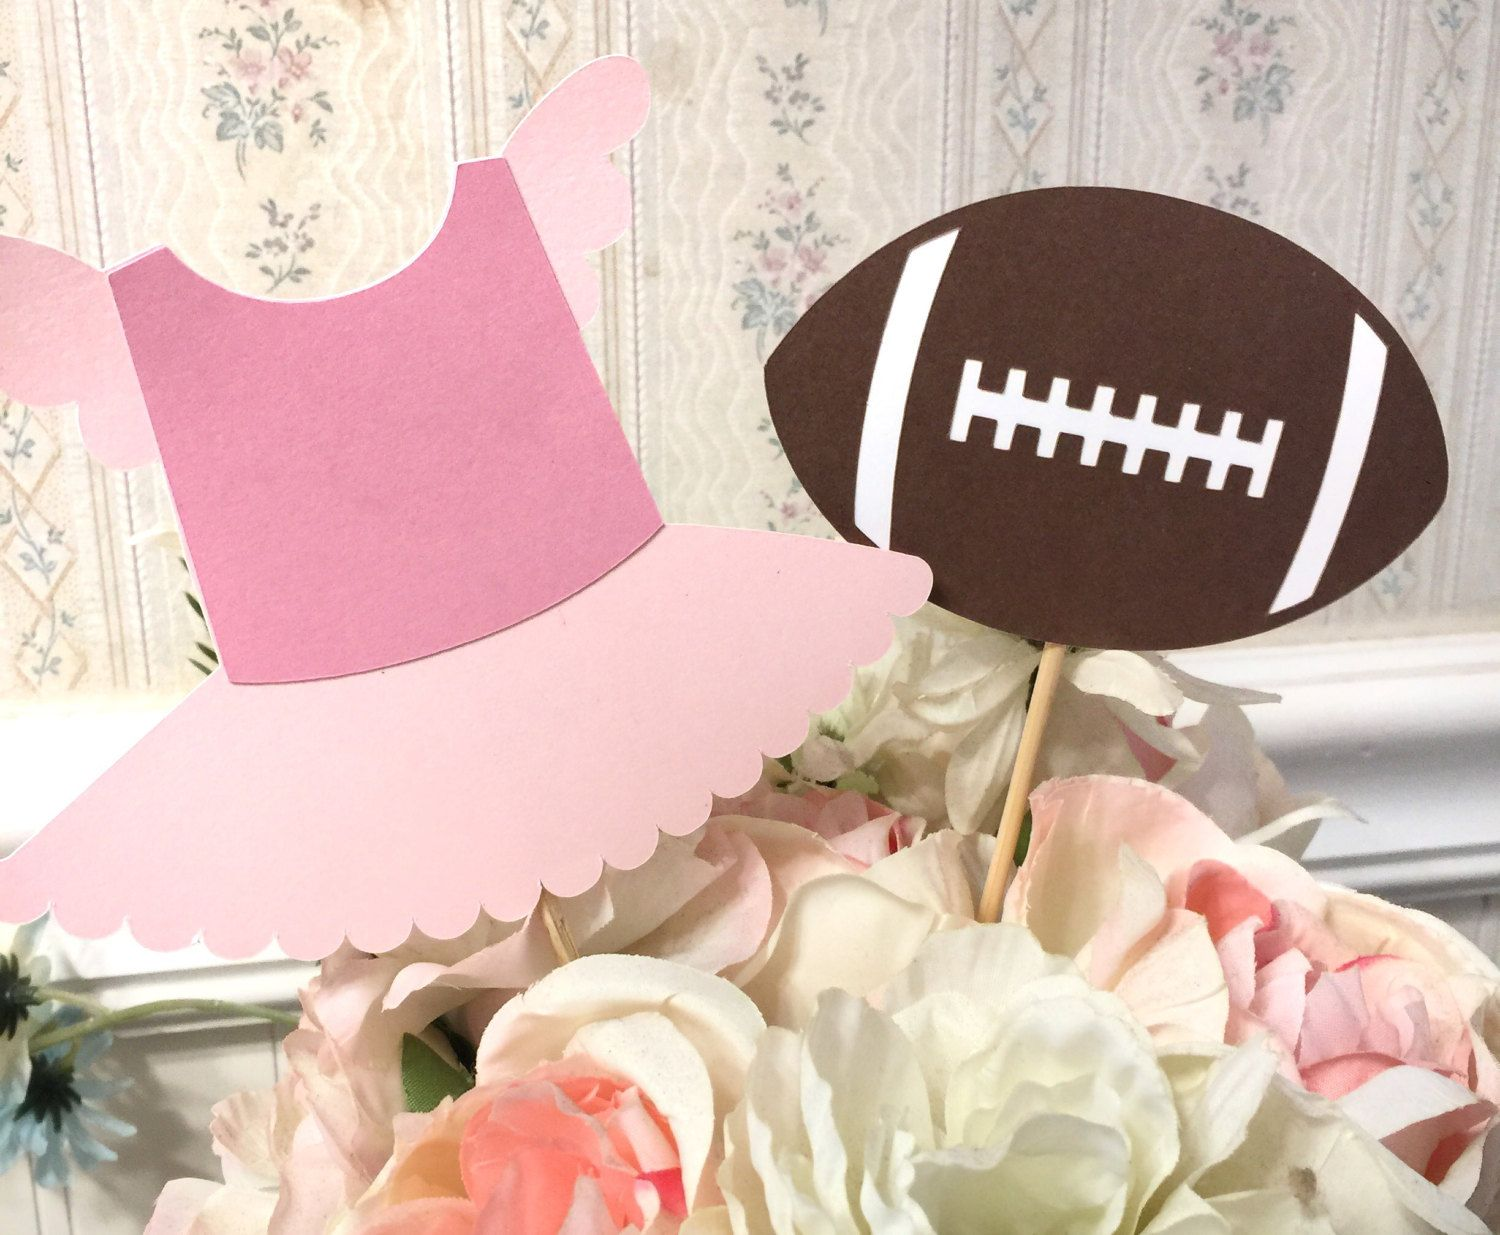 6 Piece Touchdowns Or Tutus Gender Reveal Table Decorations Centerpiece Picks Pink Vs Tutus Gender Reveal Gender Reveal Decorations Gender Reveal Diy